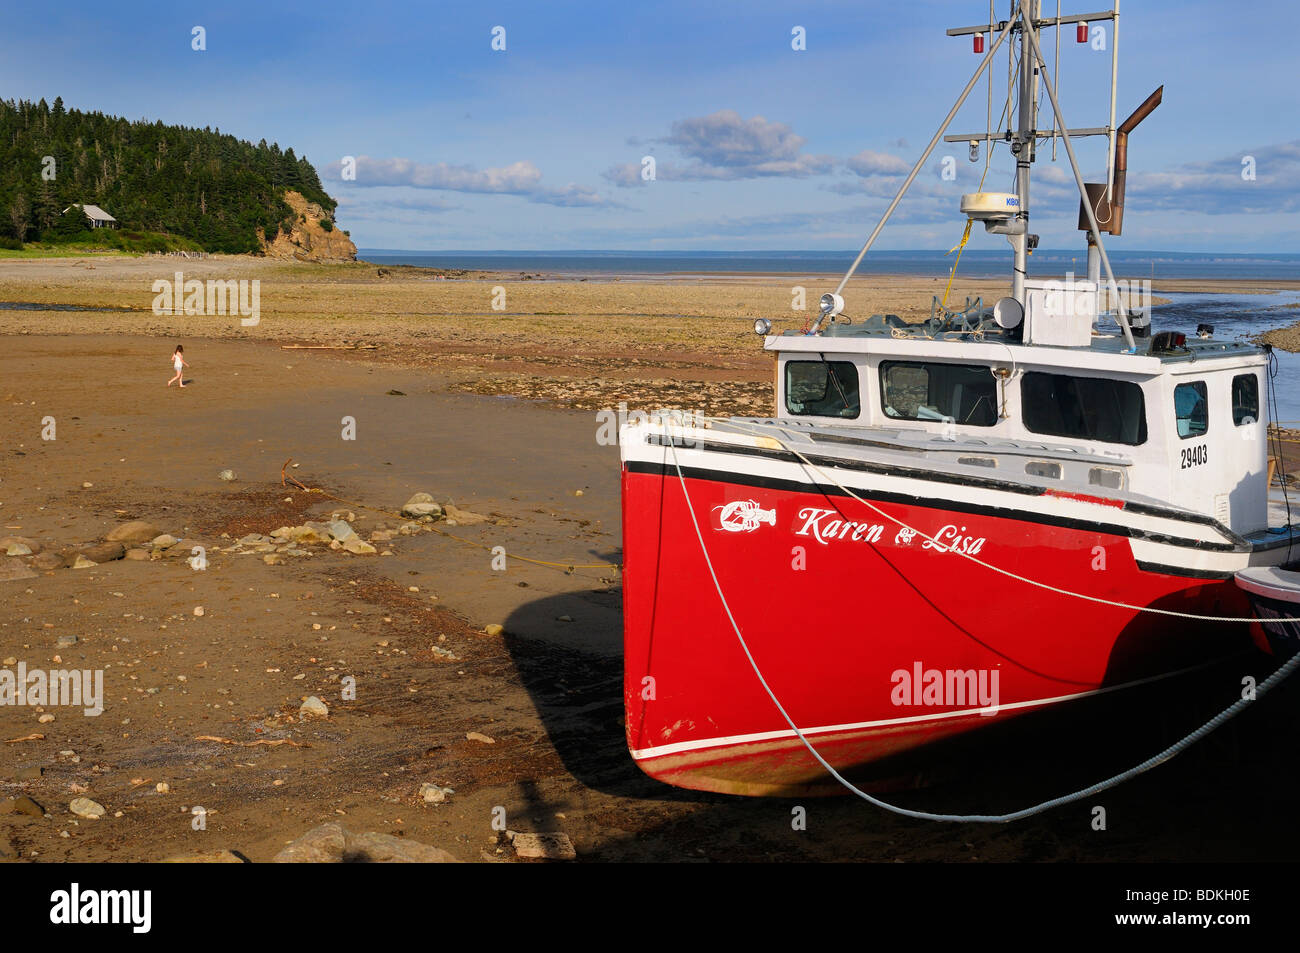 Young girl walking on Ocean floor next to an anchored boat on dry seabed on the Bay of Fundy Alma New Brunswick Stock Photo